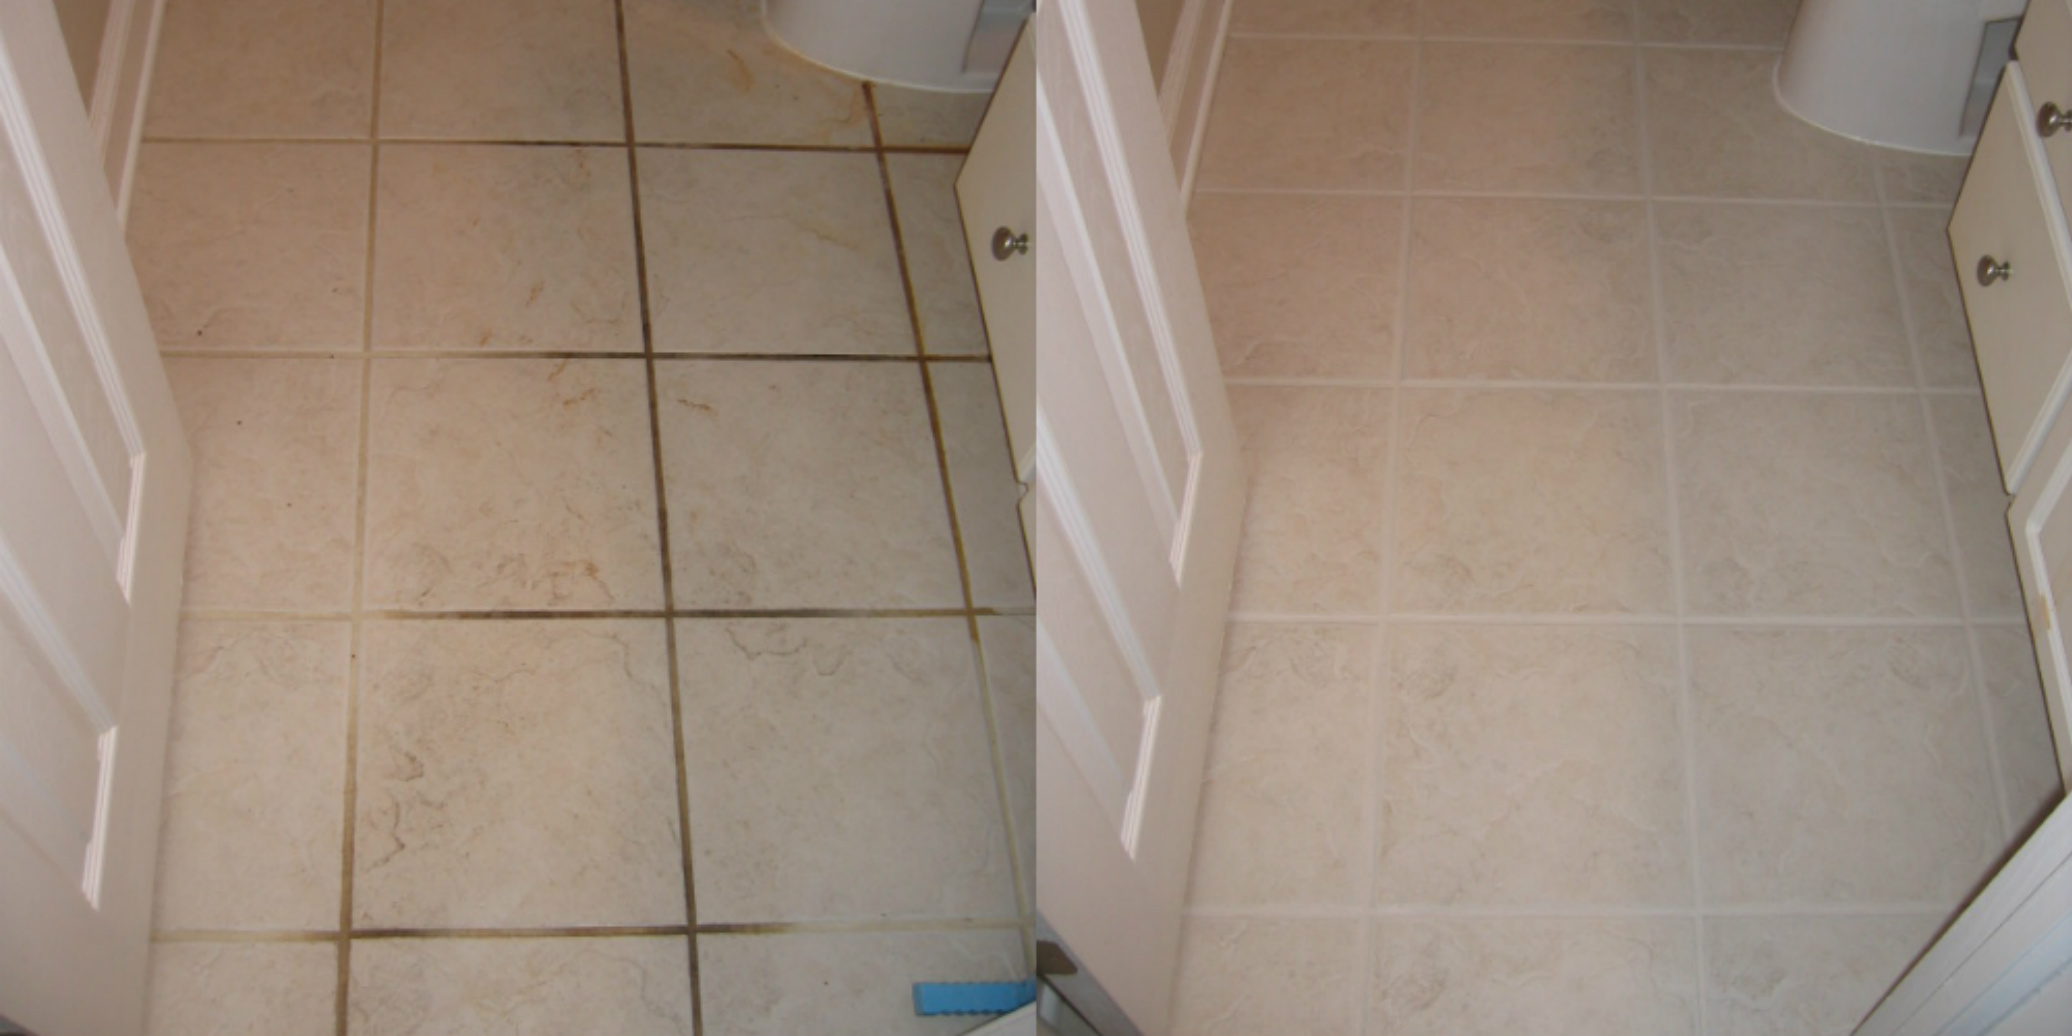 Tile and Grout Cleaning Services Macclesfield